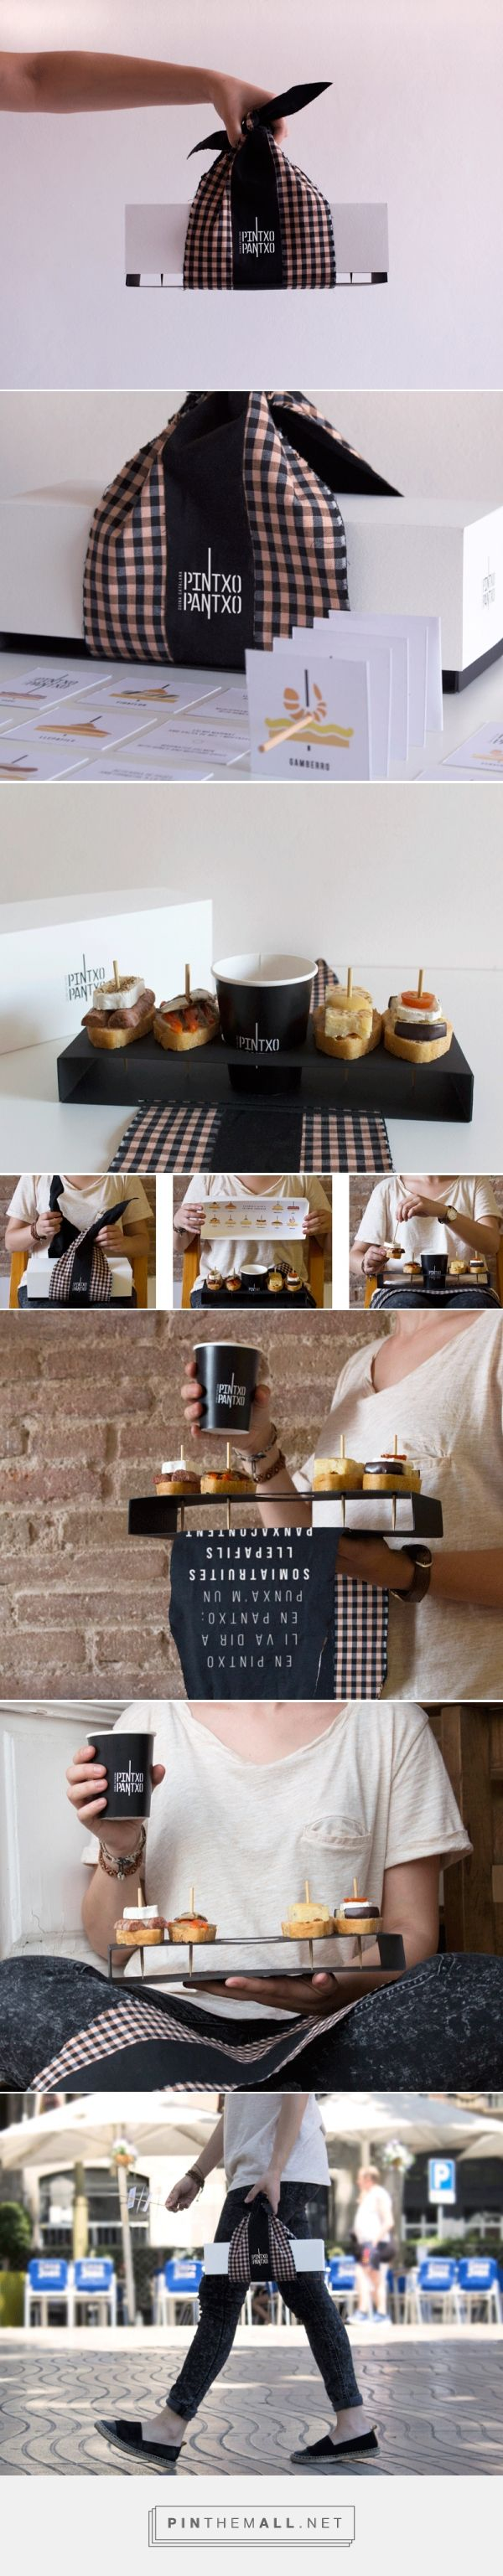 PINTXO PANTXO on Behance curated by Packaging Diva PD. Love this takeaway packaging branding. Be sure and look at the details.